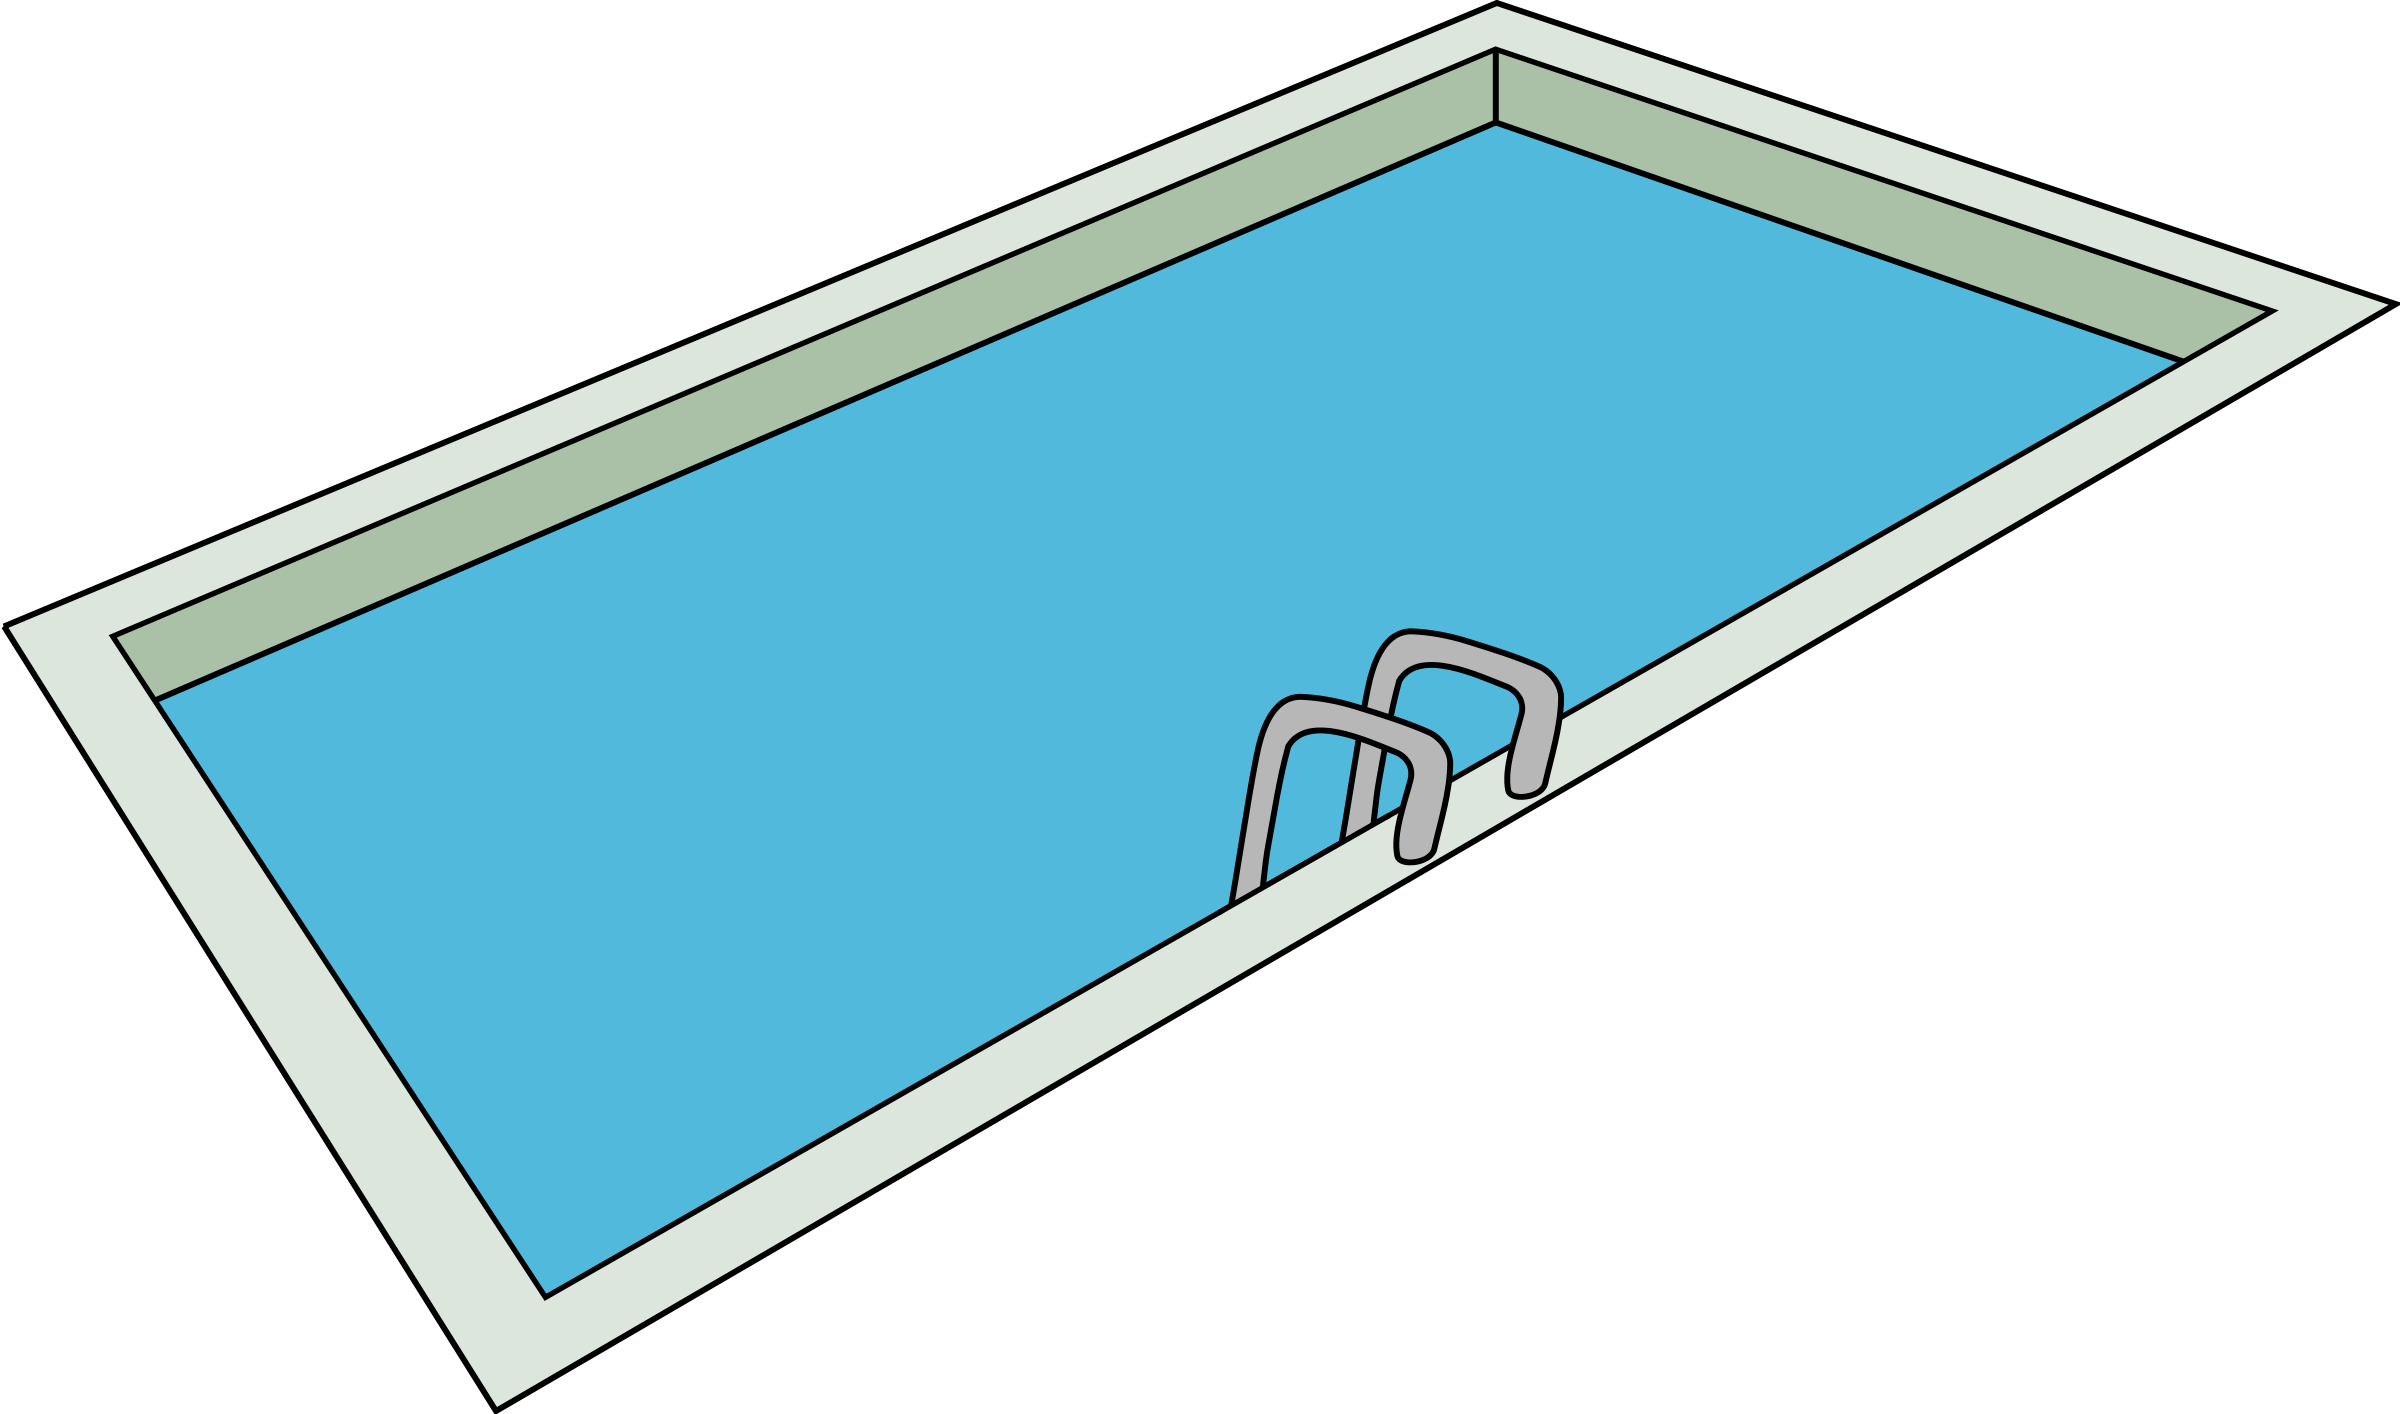 pool clipart-pool clipart-2